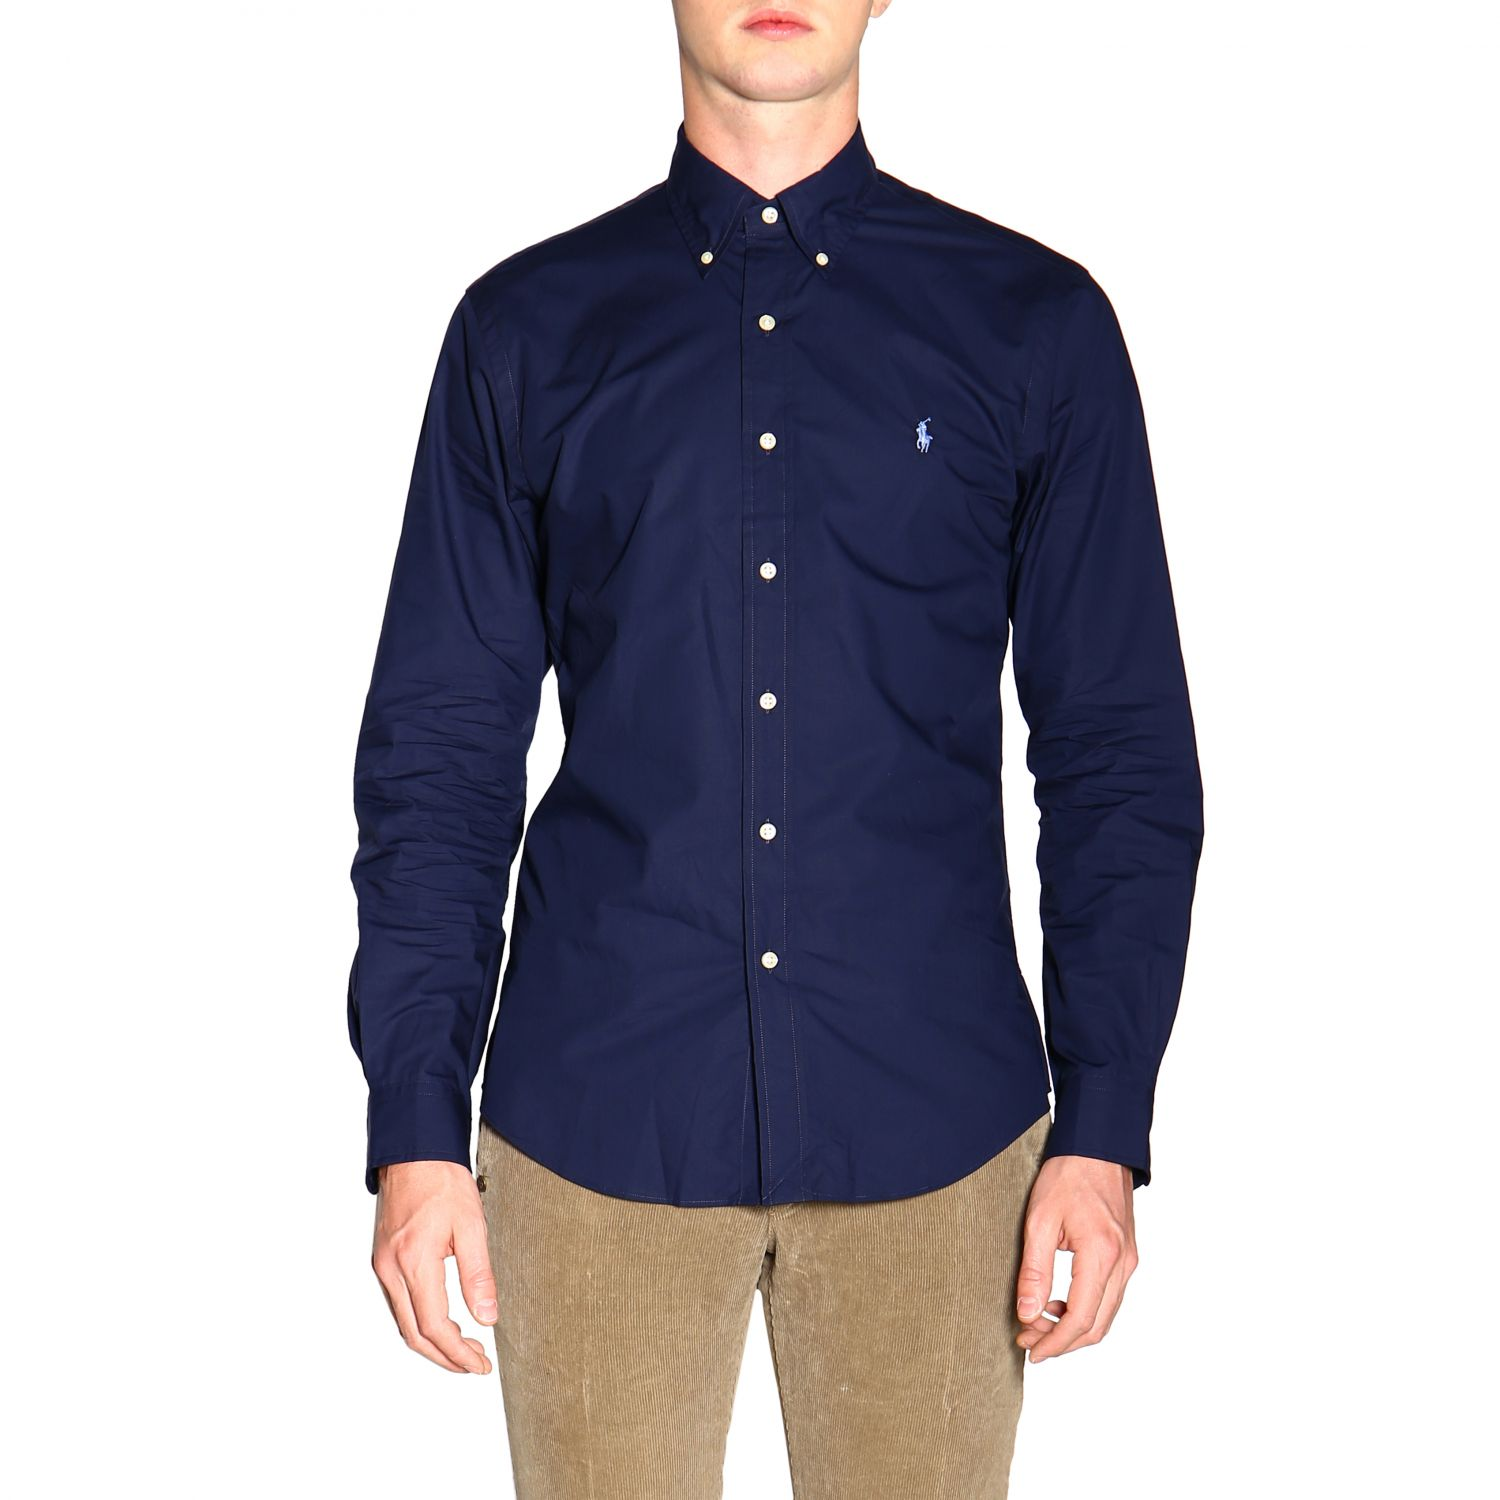 Natural stretch custom fit shirt with button down collar and Polo Ralph Lauren logo blue 1